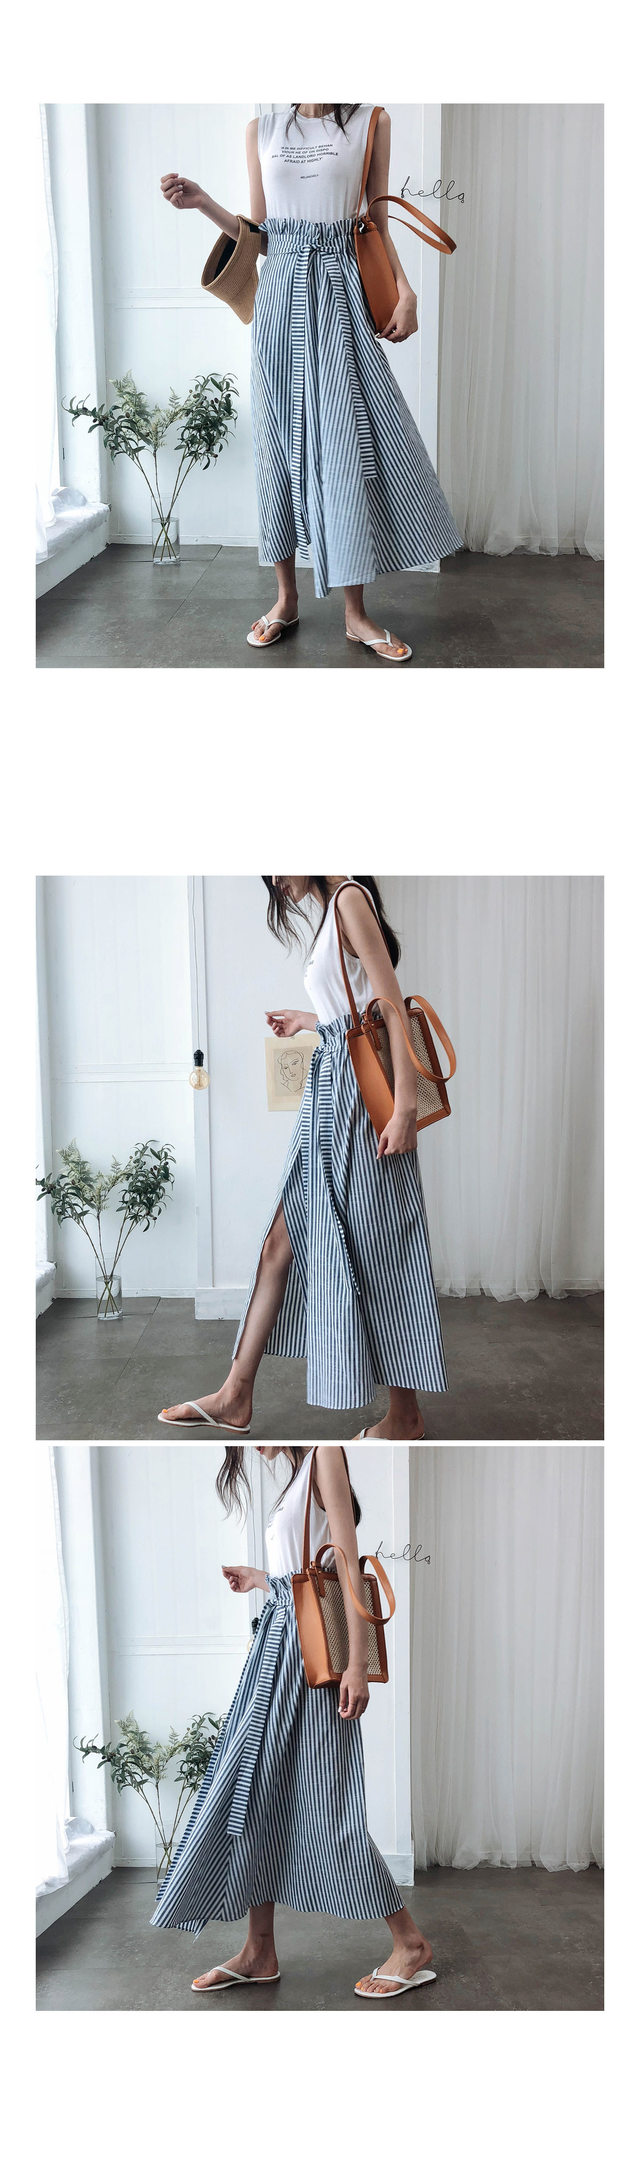 Striped and long skirt